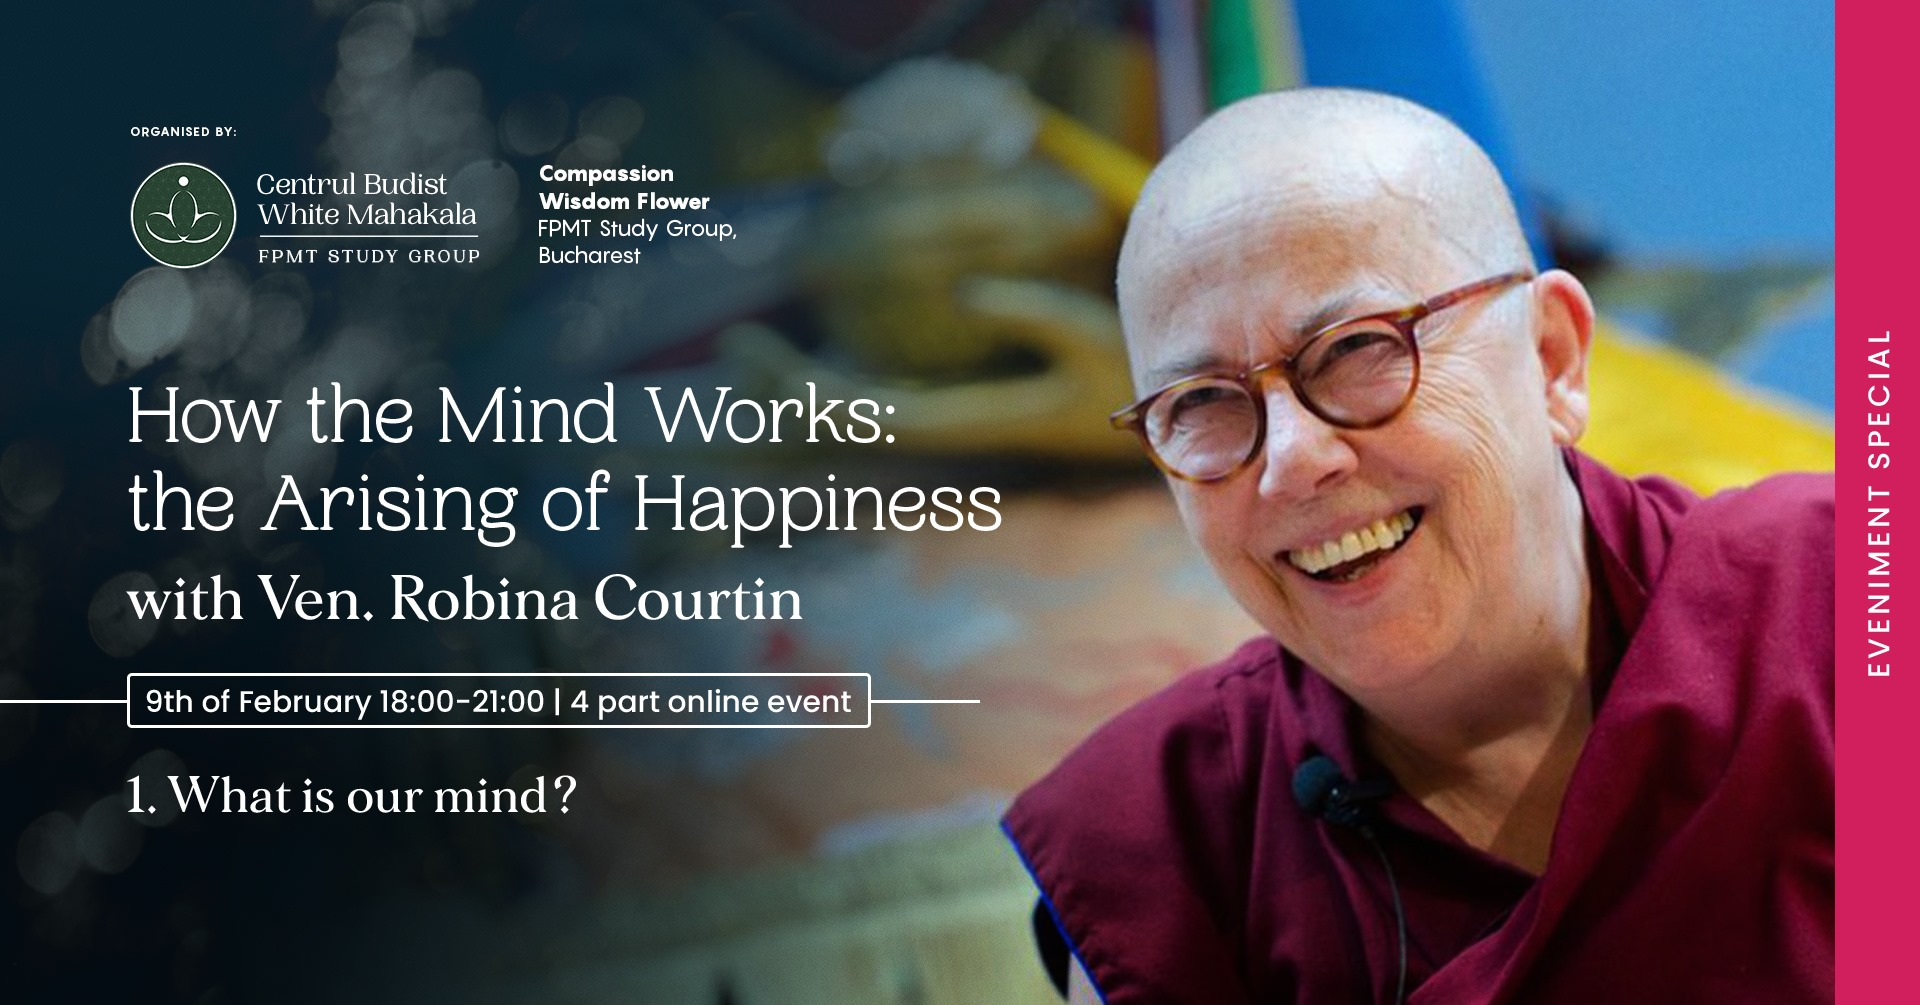 1. WHAT IS OUR MIND?  with Venerable Robina Courtin